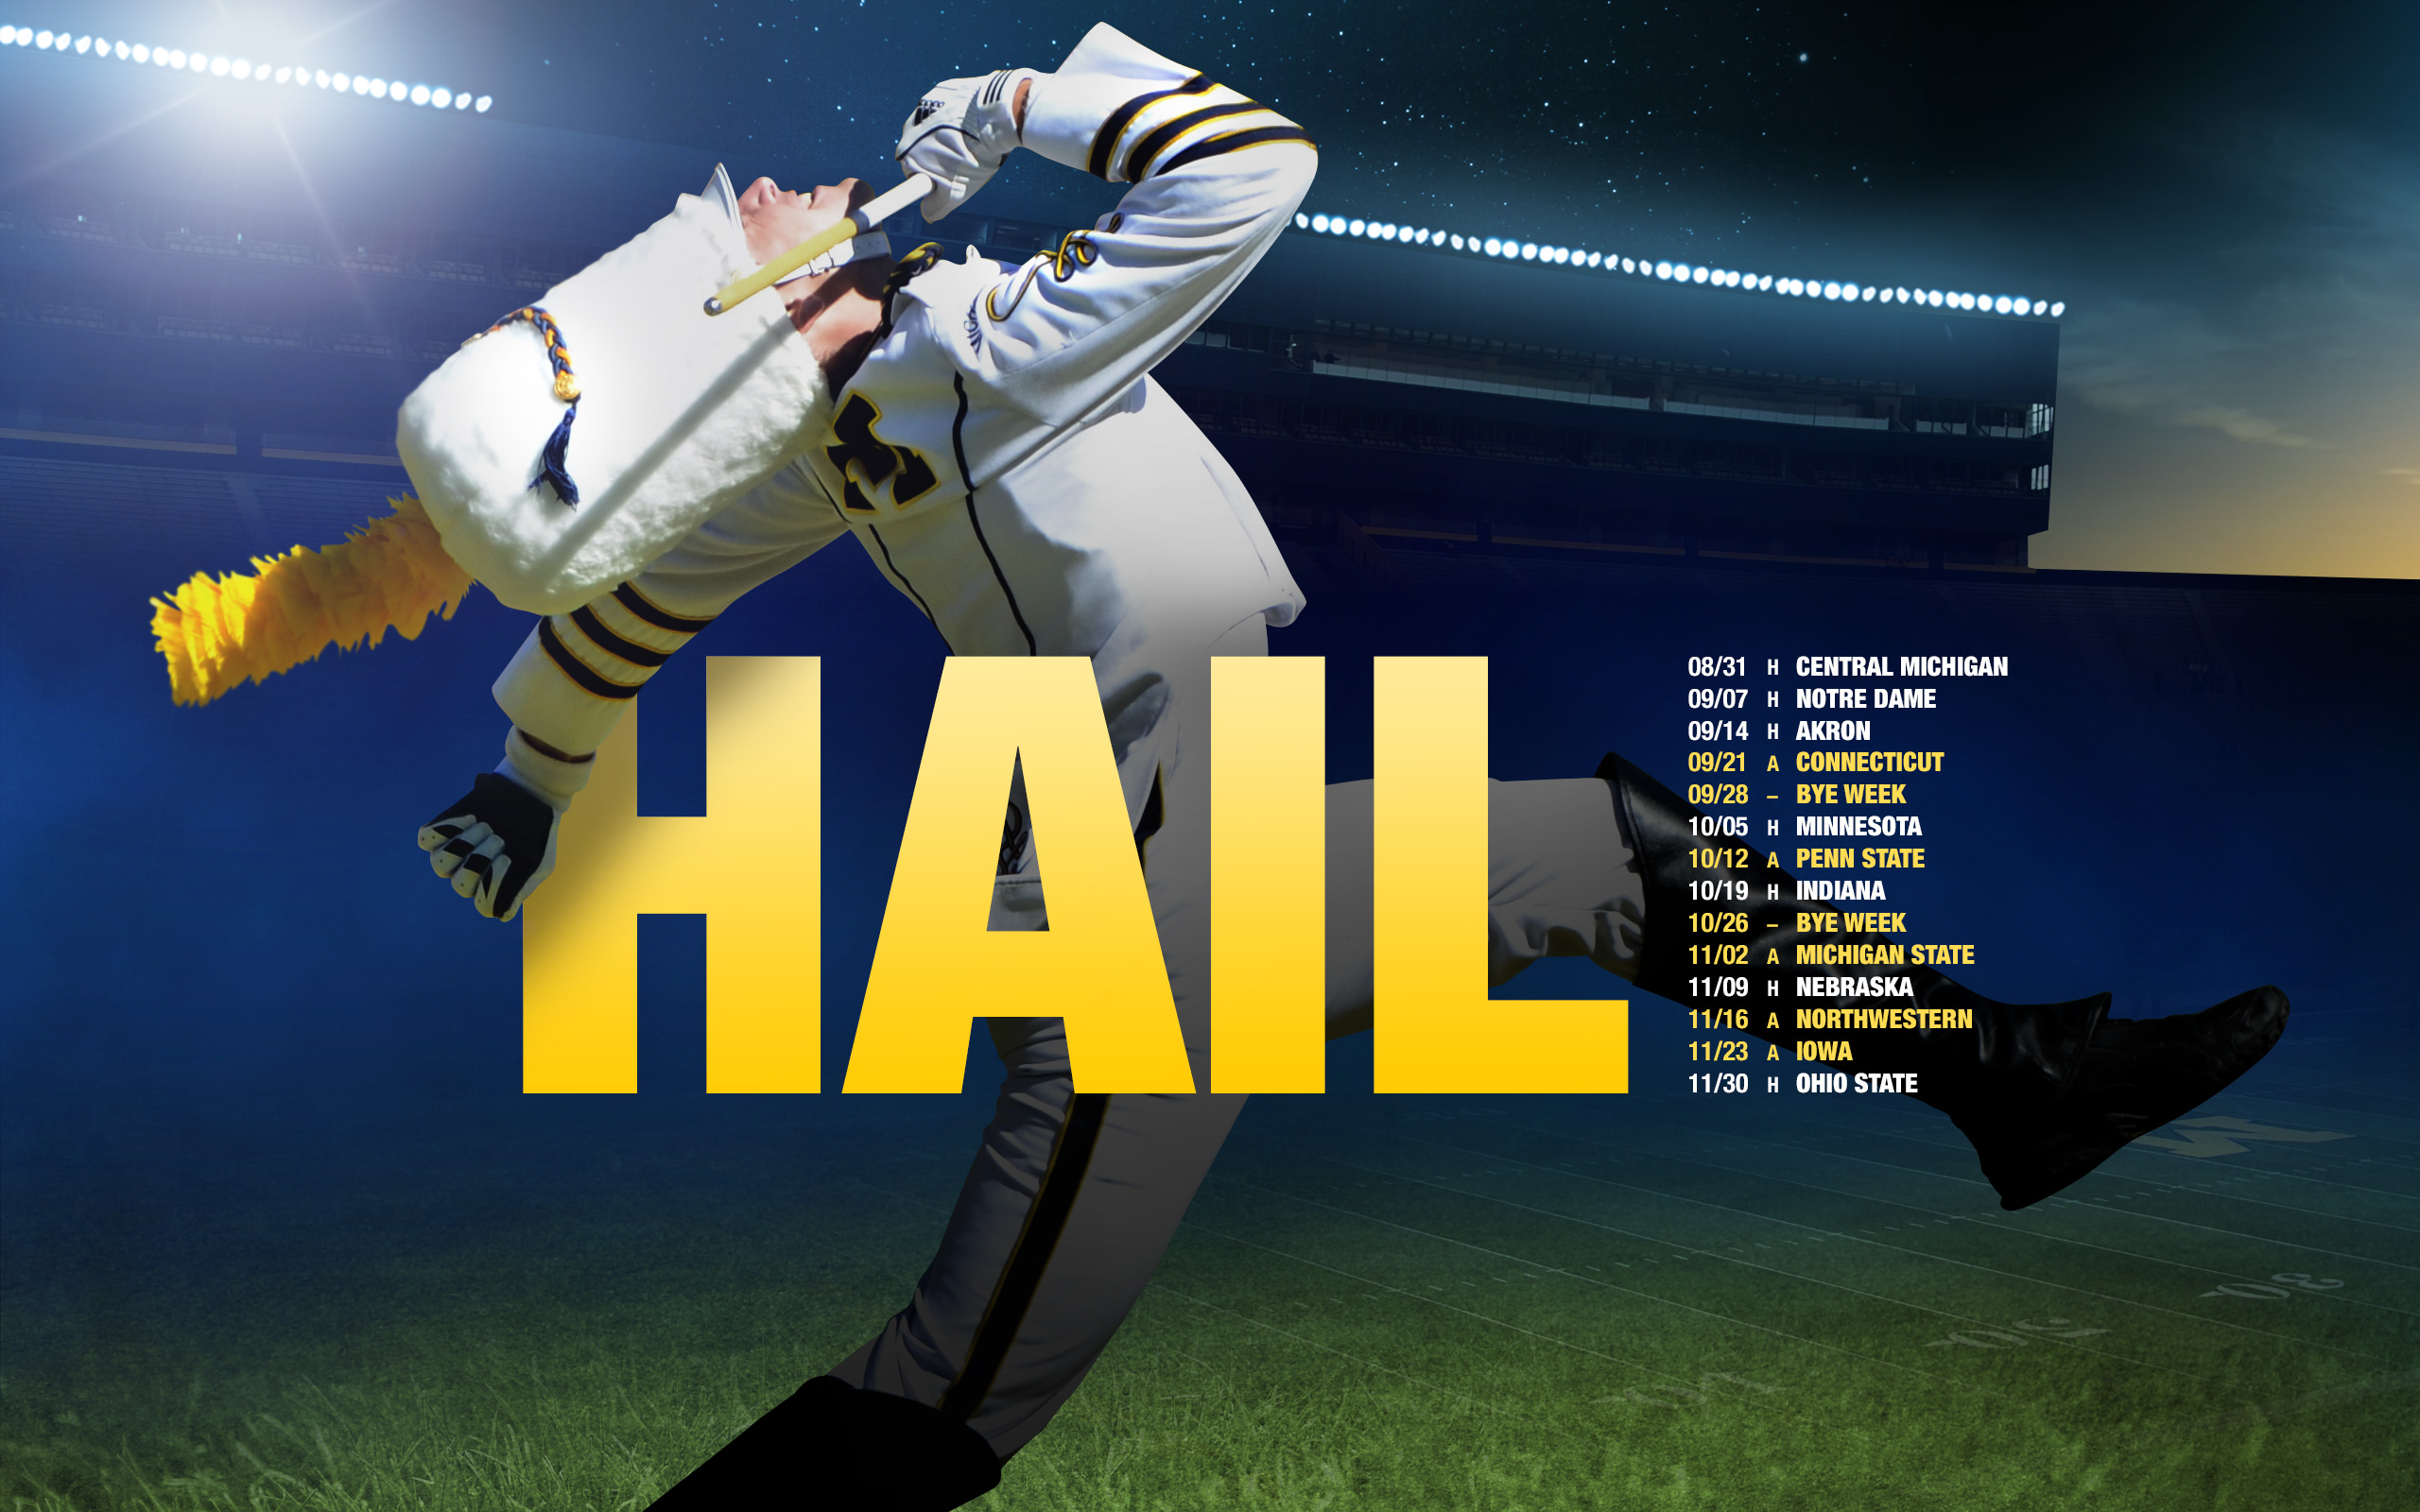 image about Michigan Football Schedule Printable titled 49+] Michigan Soccer Routine 2015 Wallpaper upon